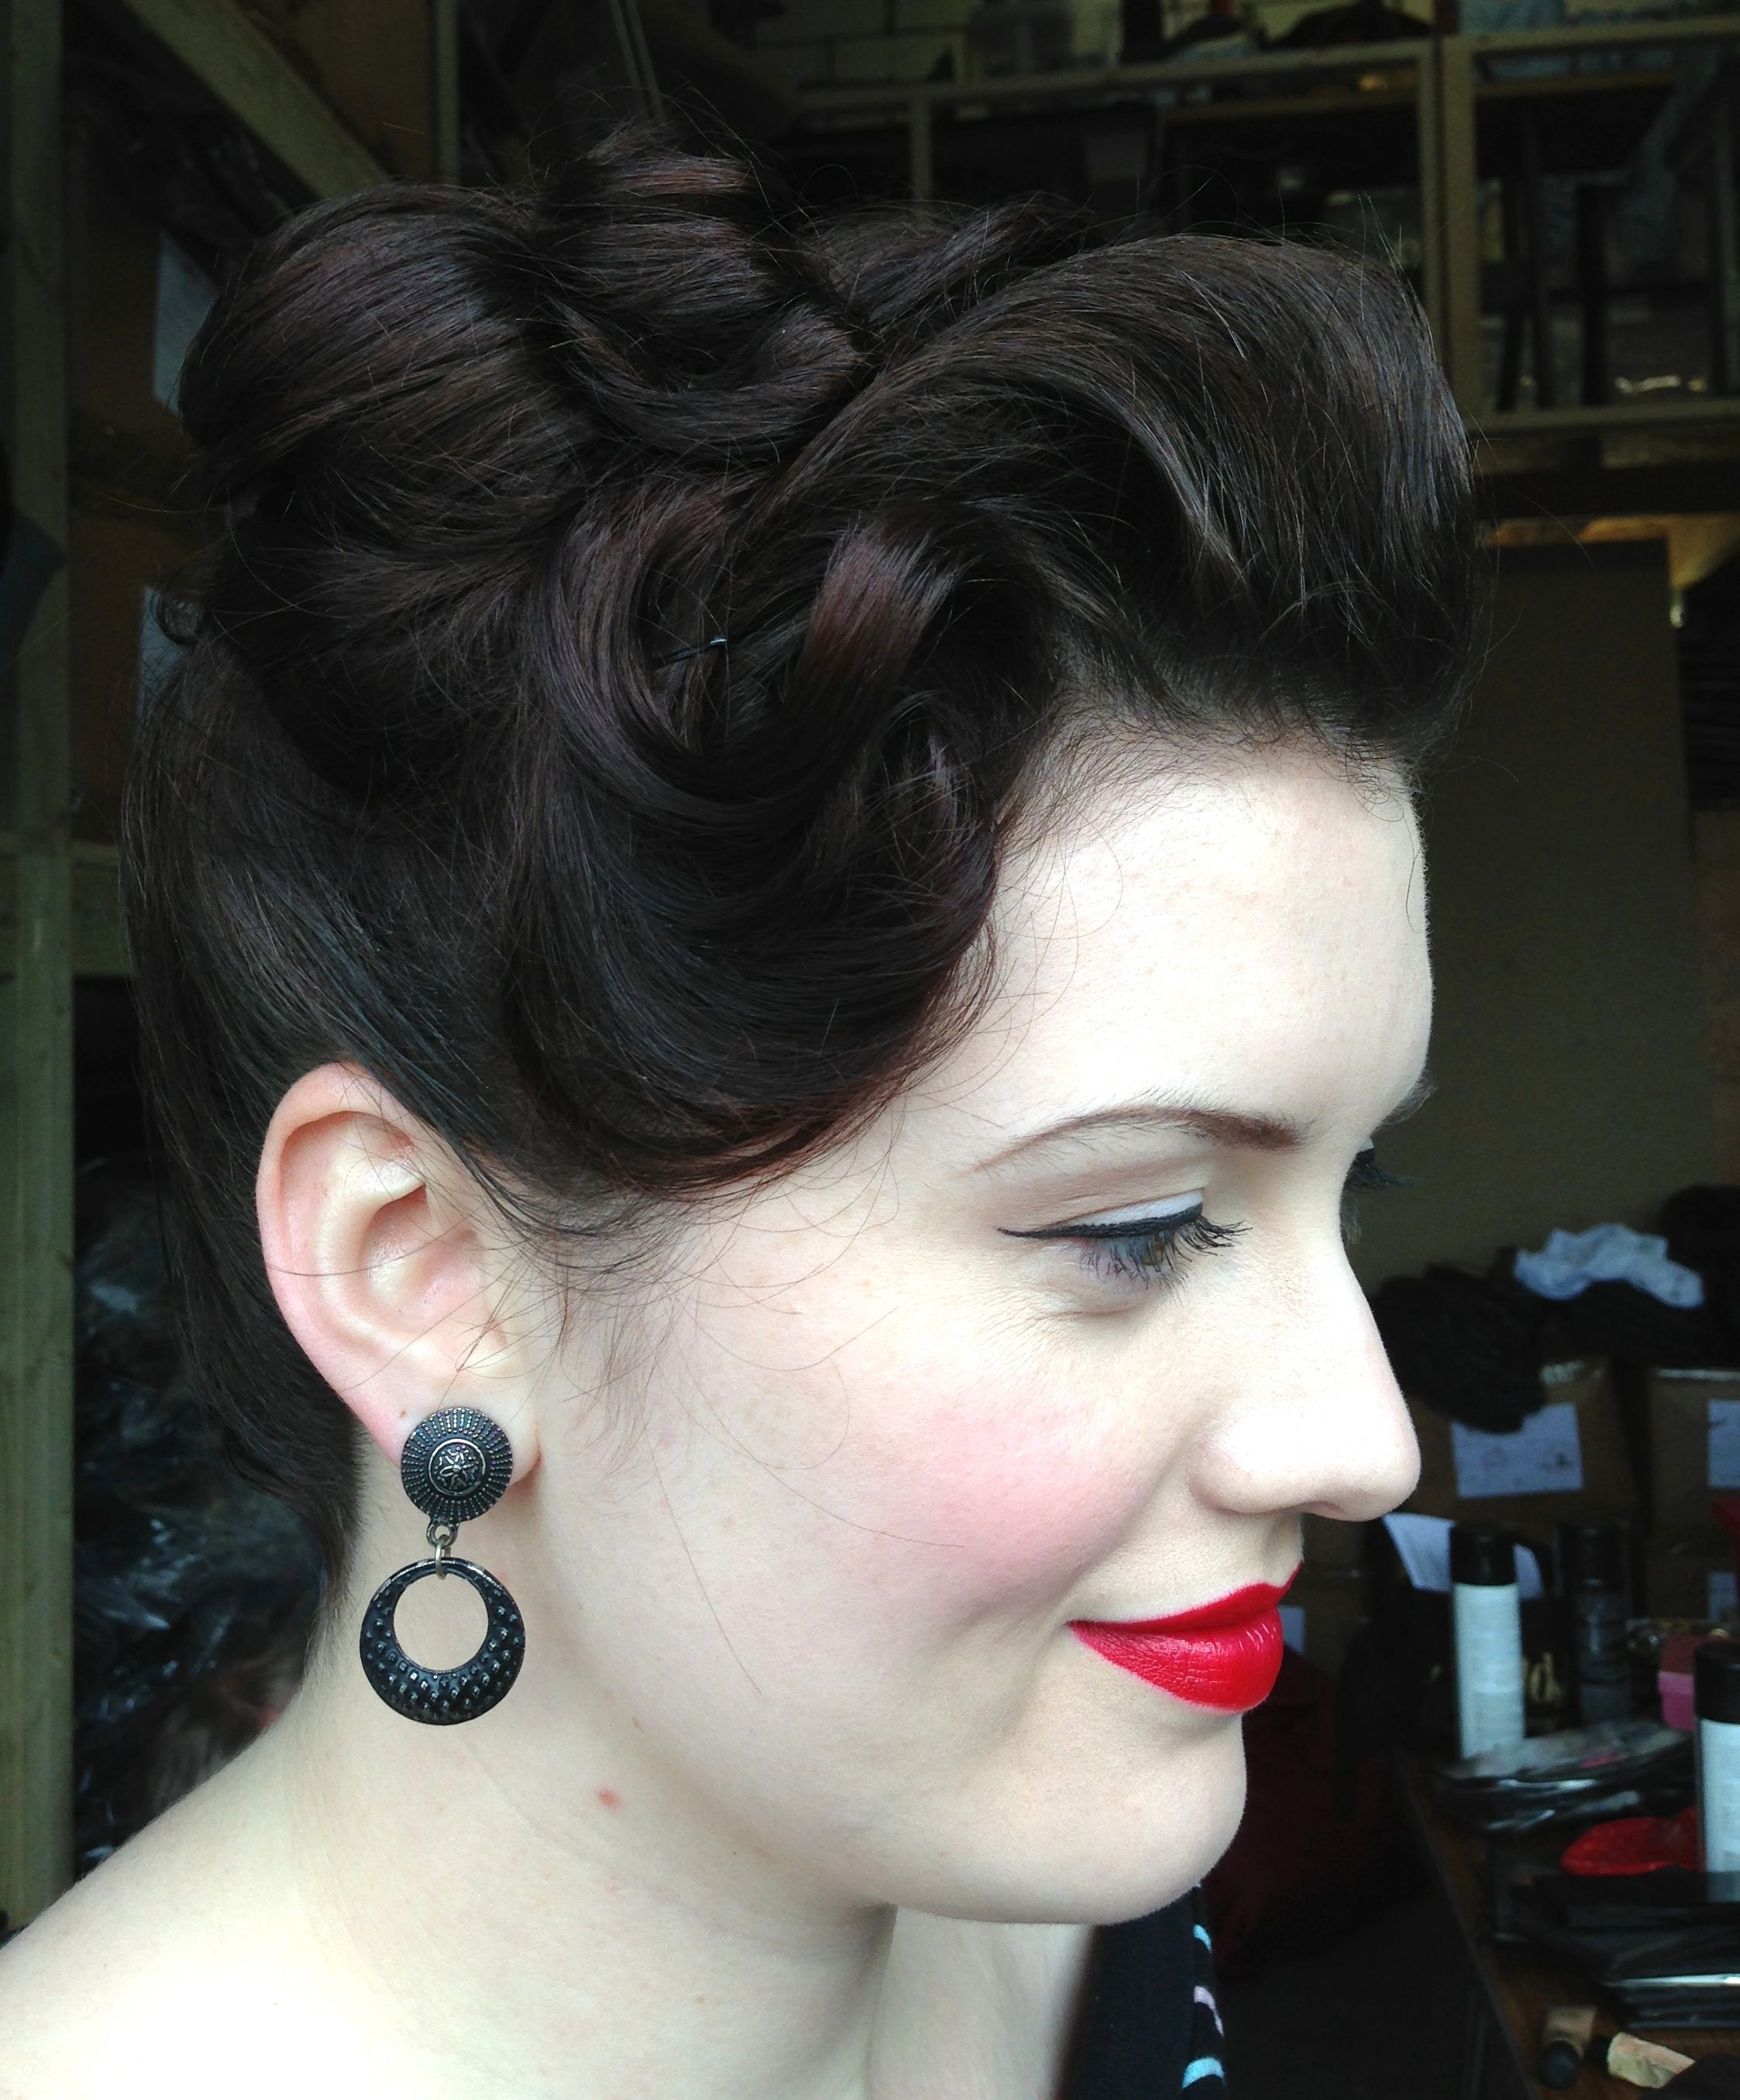 Another behind the scenes shot for Freddies of Pinewood hair & makeup Lipstick and Curls www.lipstickandcurls.net www.freddiesofpinewood.co.uk Model: Laura Lockyer